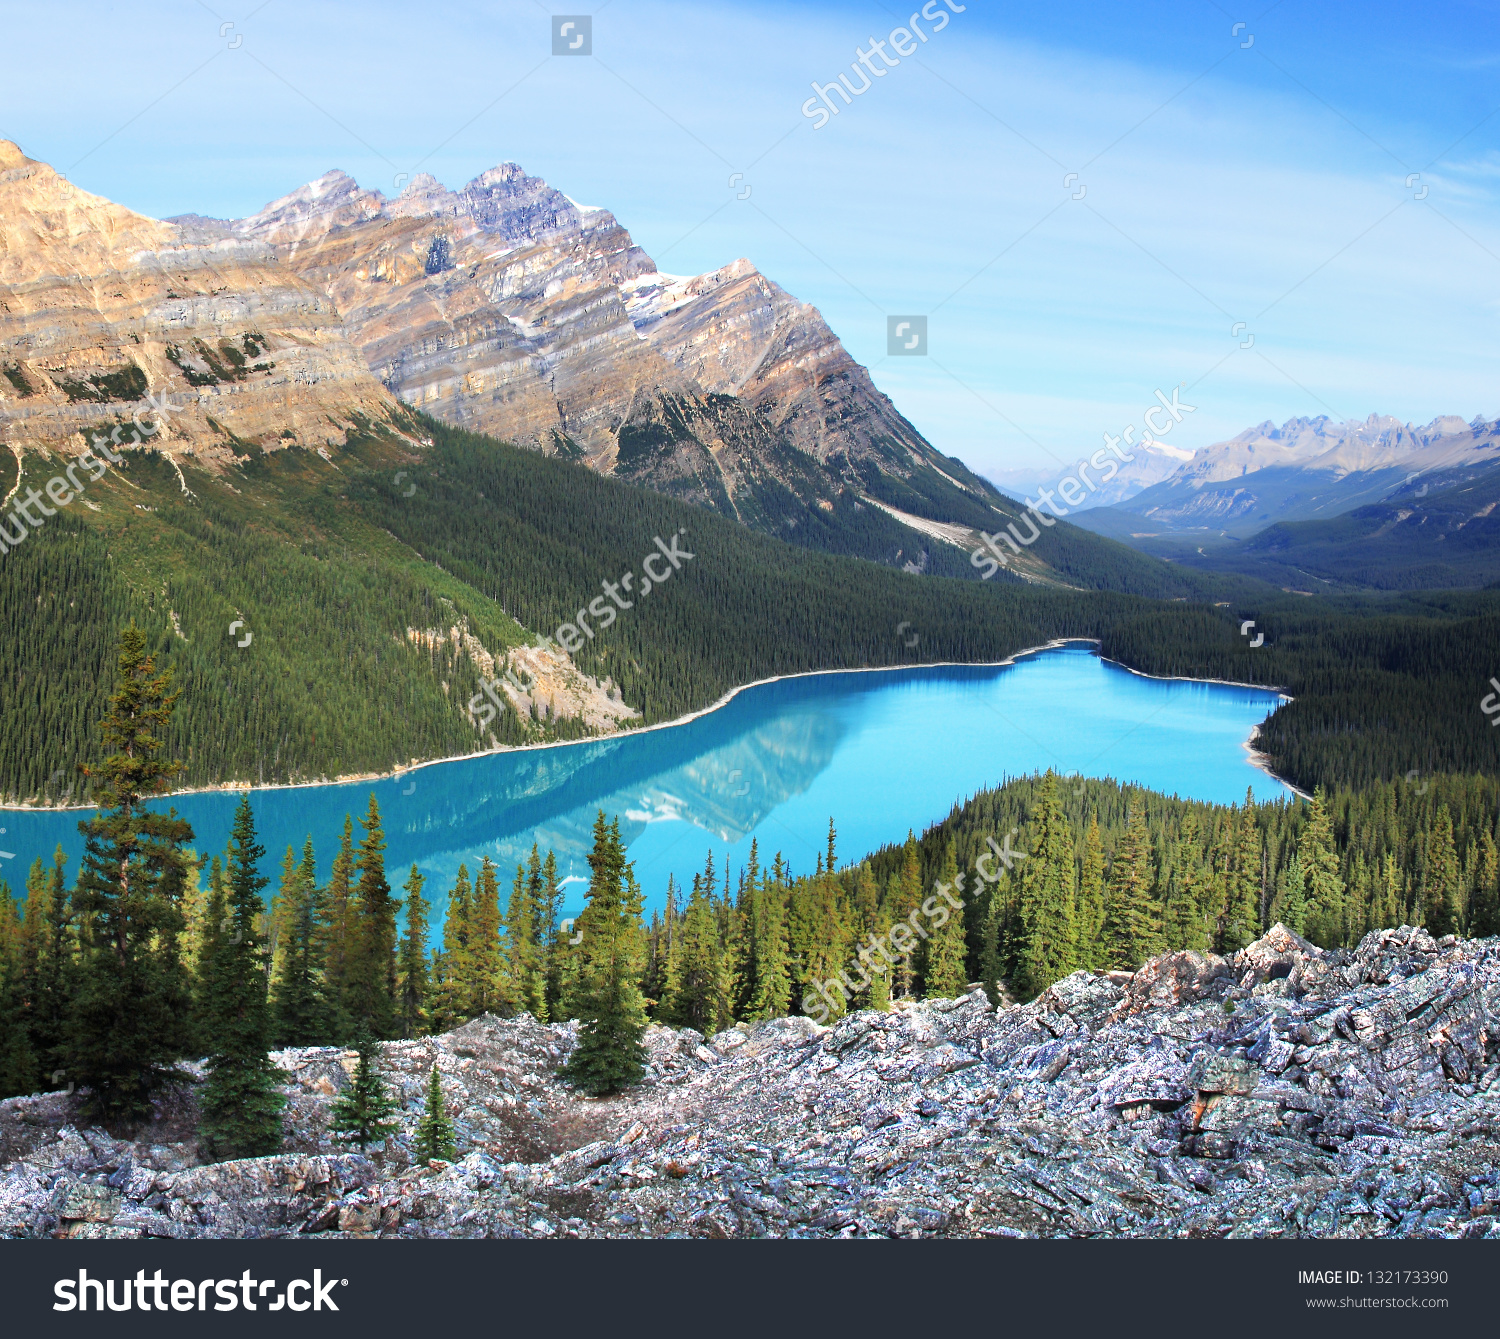 Peyto Lake clipart #2, Download drawings